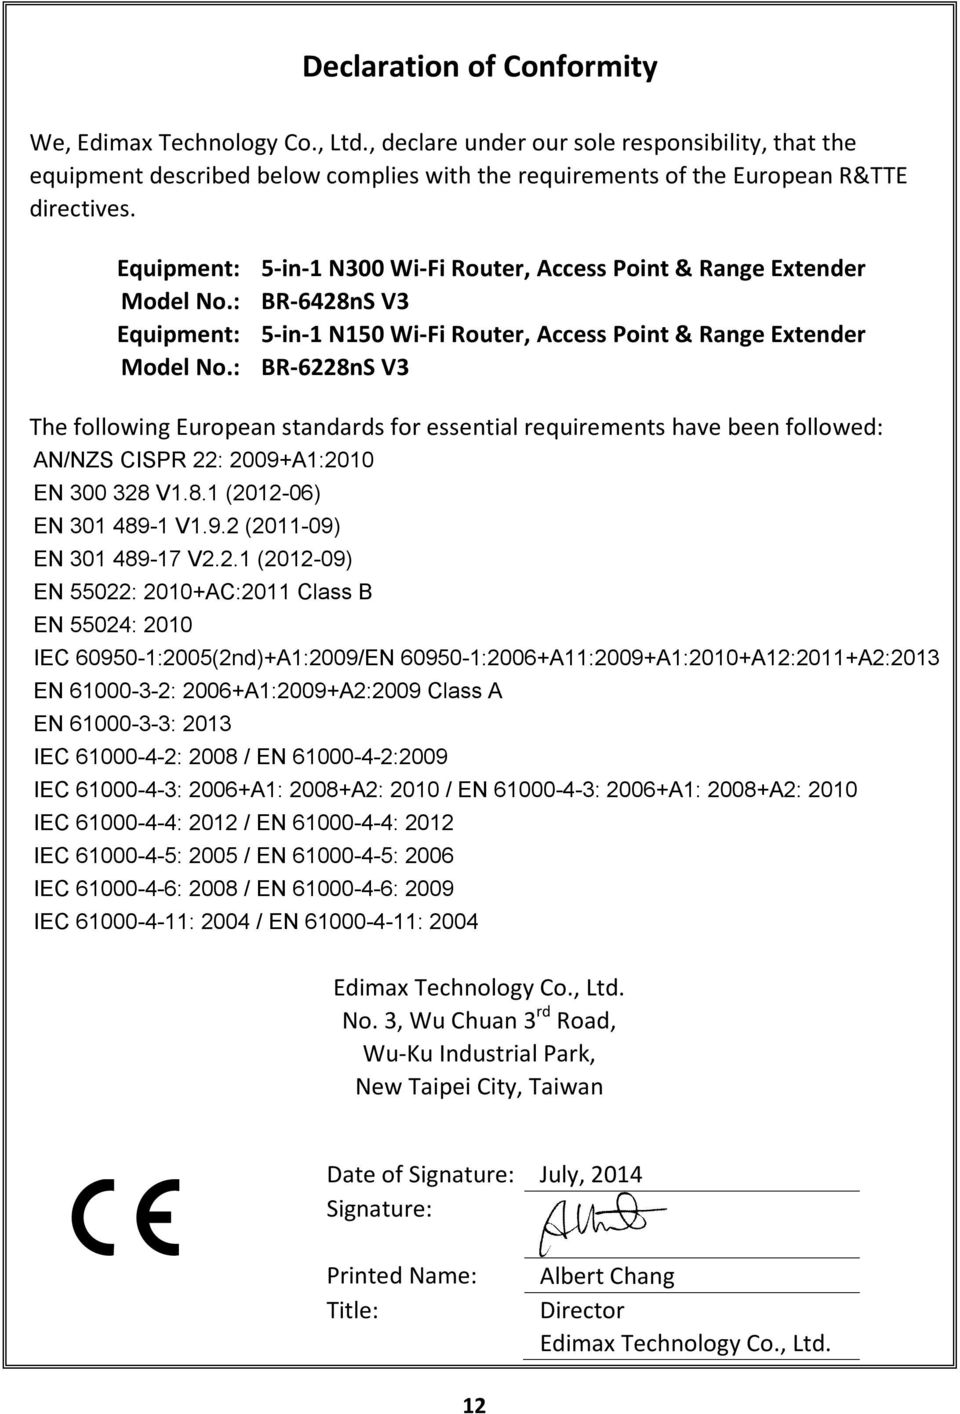 : BR-6228nS V3 The following European standards for essential requirements have been followed: AN/NZS CISPR 22: 2009+A1:2010 EN 300 328 V1.8.1 (2012-06) EN 301 489-1 V1.9.2 (2011-09) EN 301 489-17 V2.